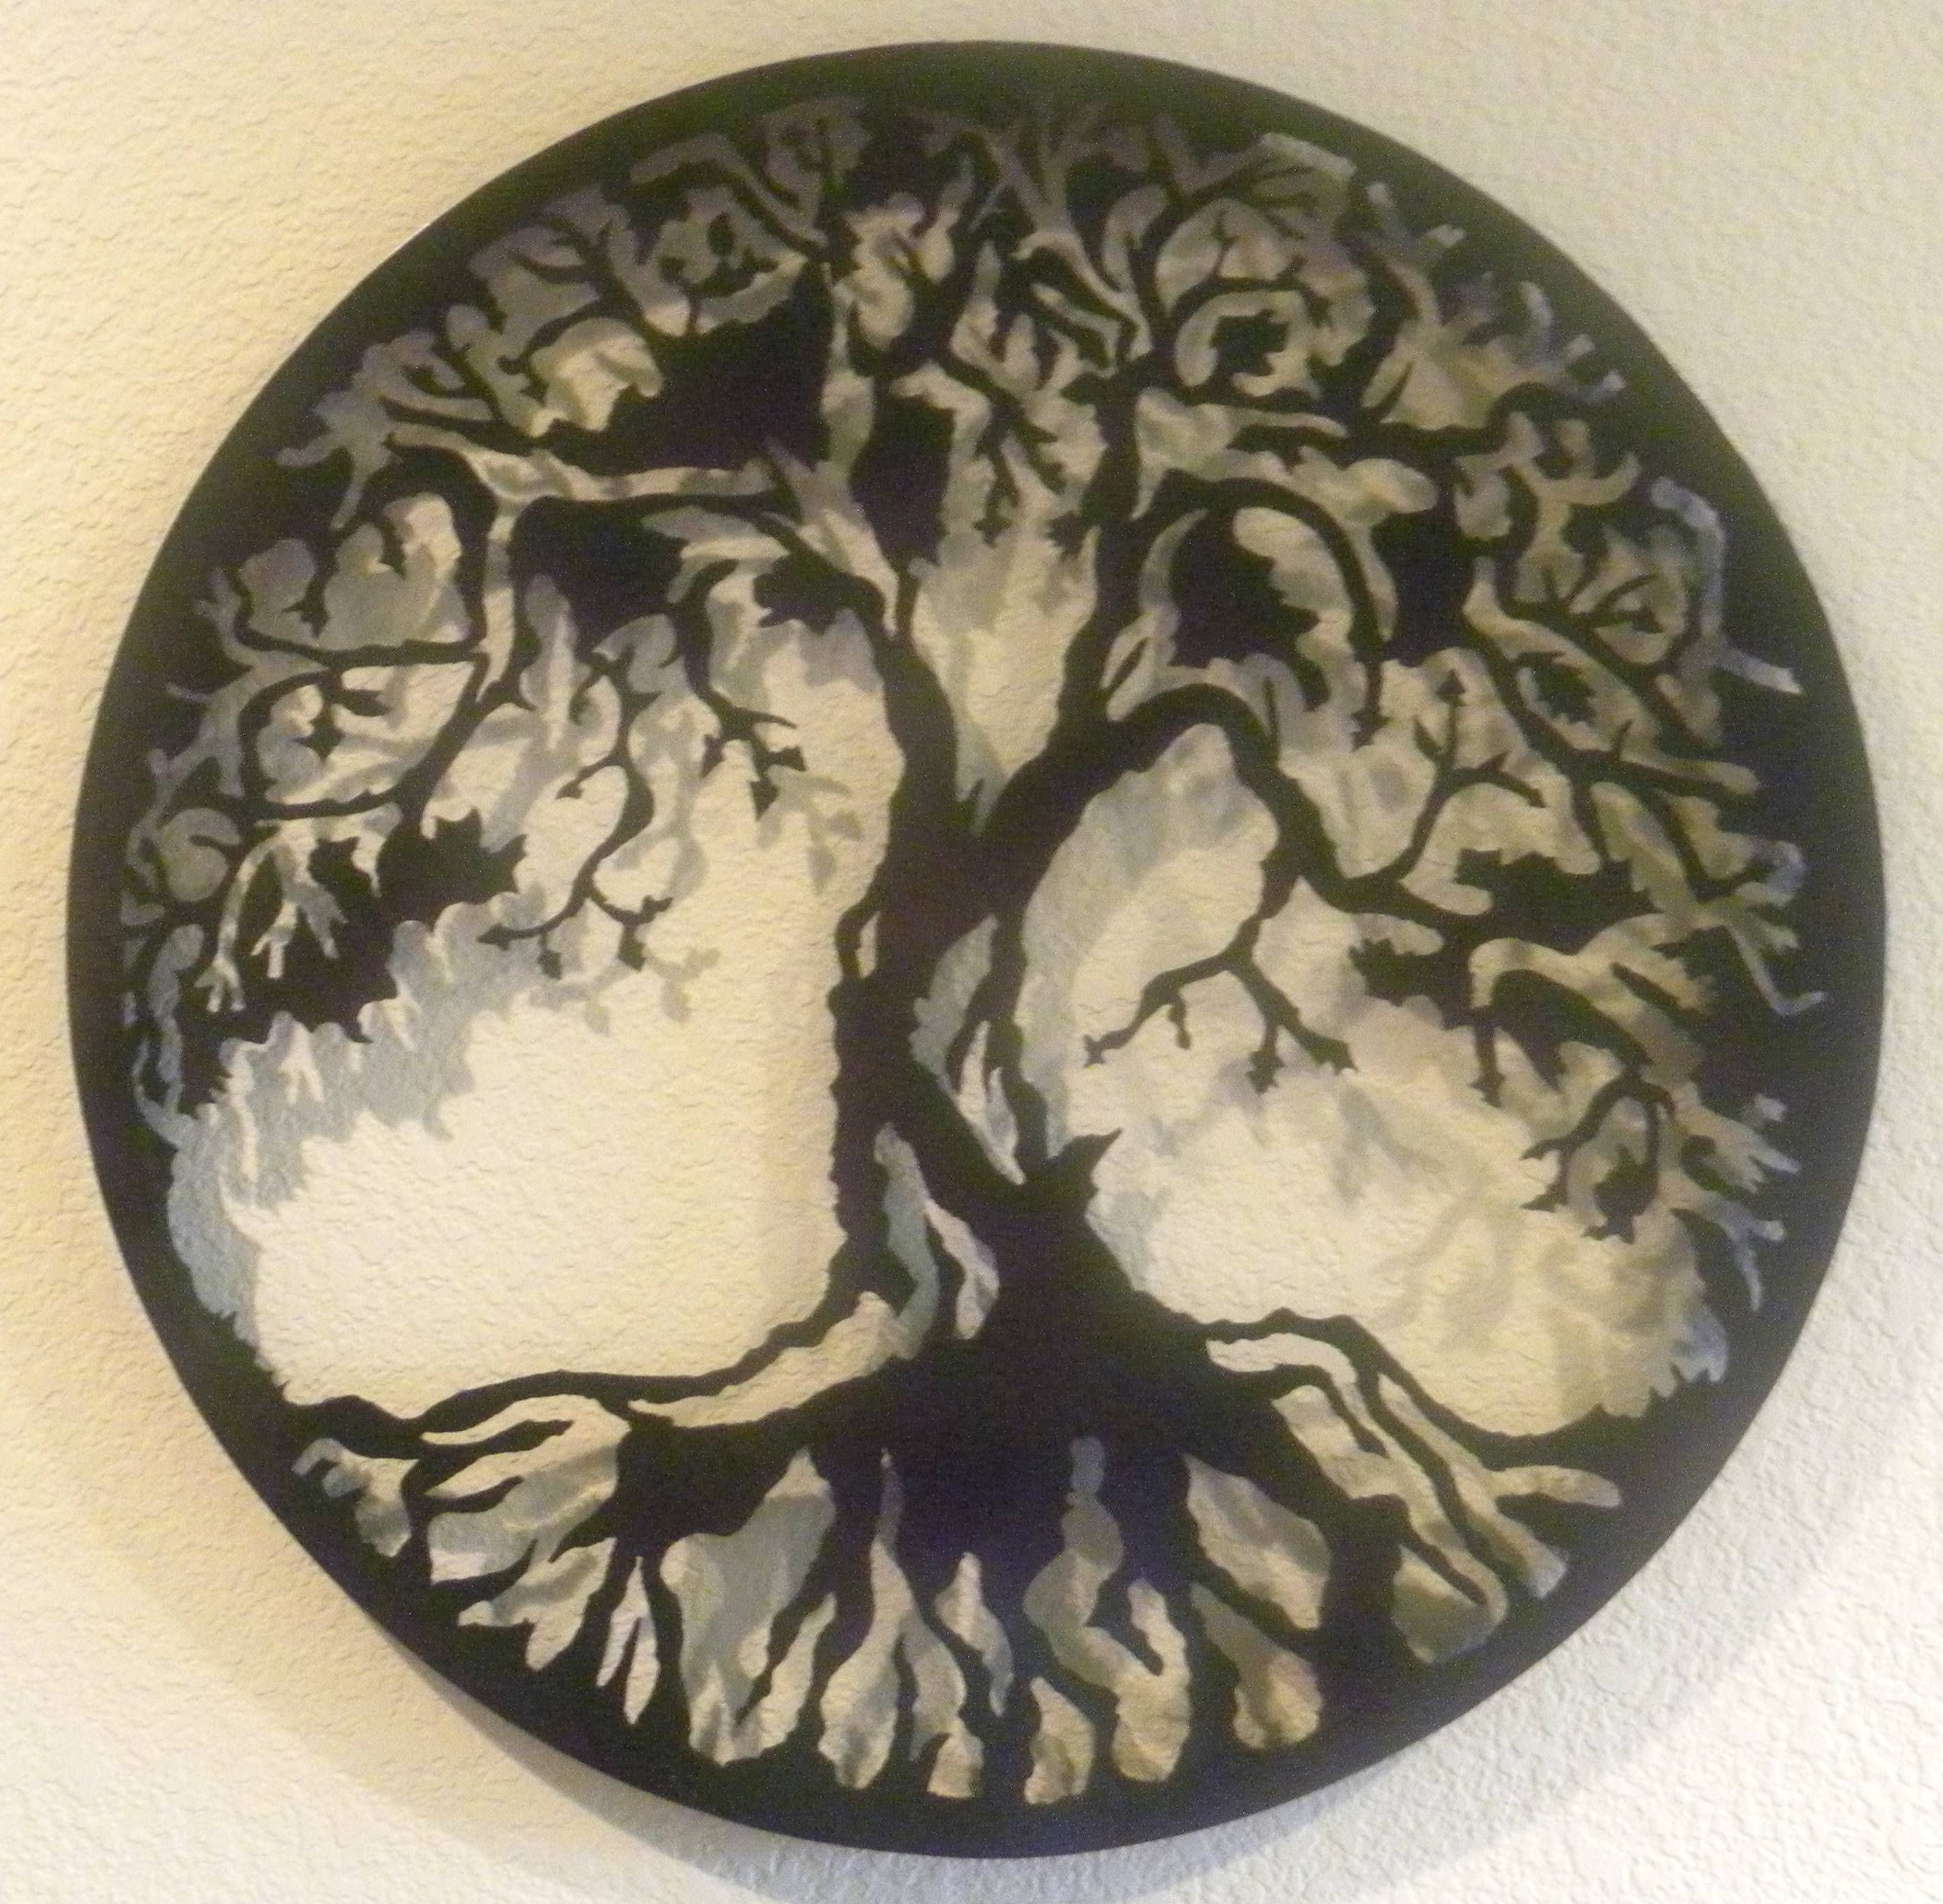 Well Liked Celtic Tree Of Life Wall Art Regarding Van Read: Southern Imagination (View 14 of 15)